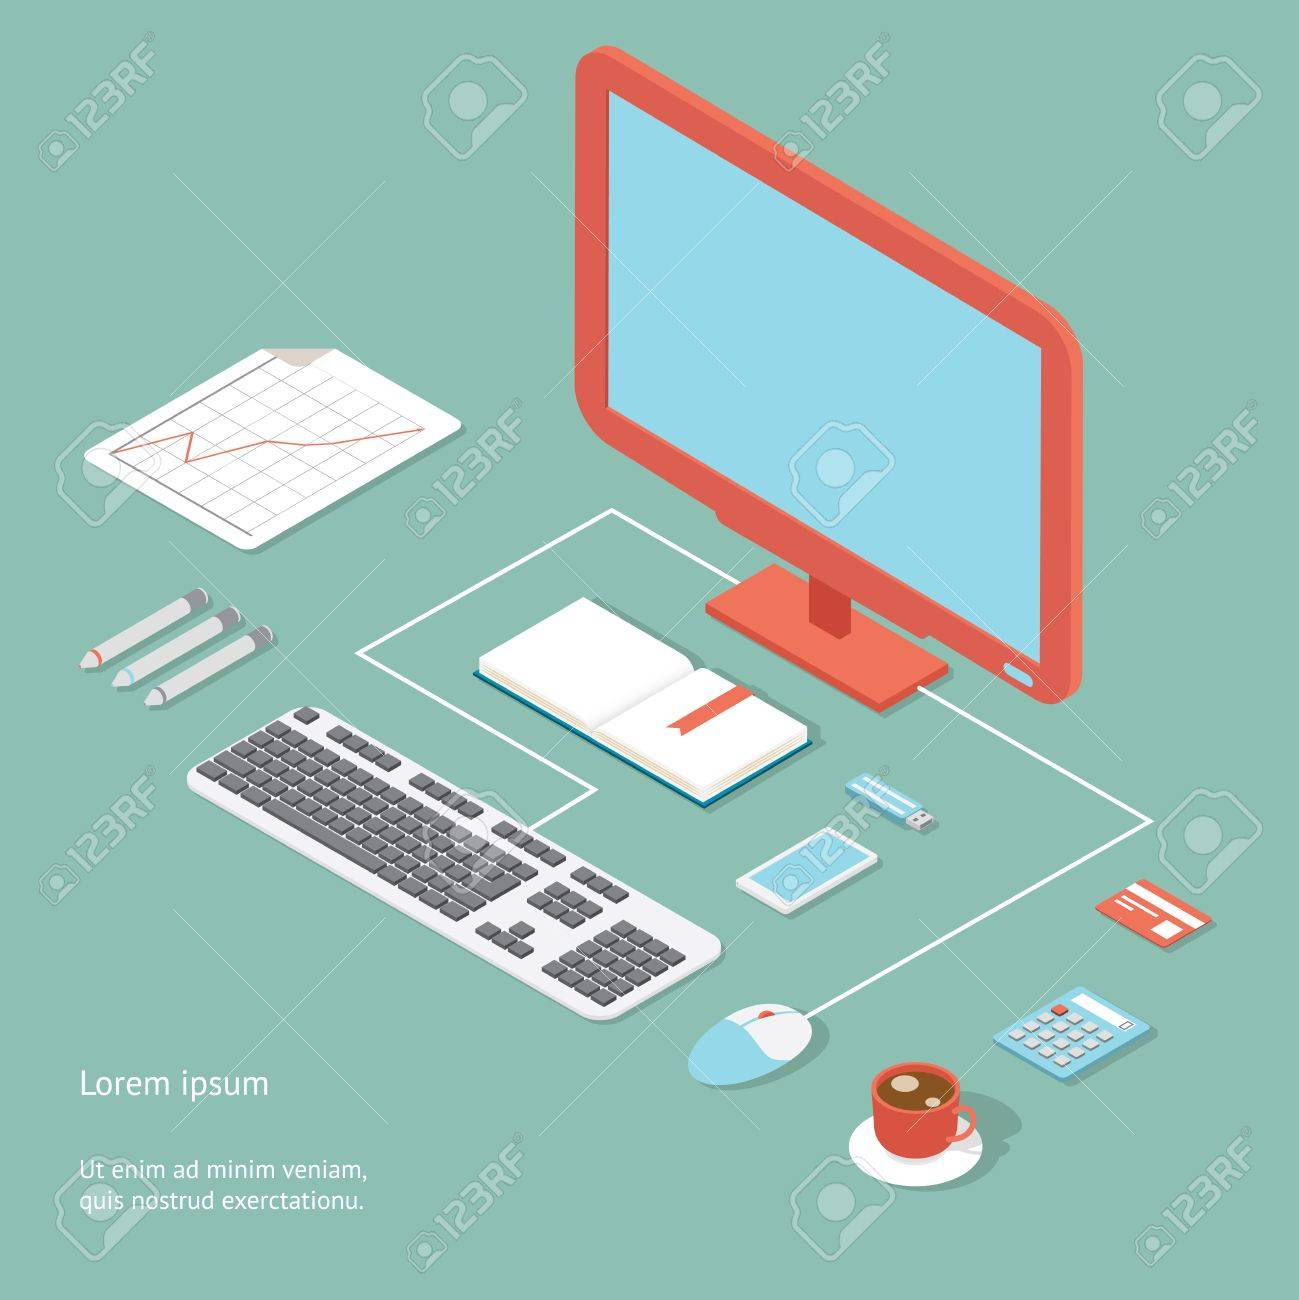 Desktop Computer Wiring Diagram Vector Workplace In Flat Style Showing An Office Desk A Similiar Hardware Keywords